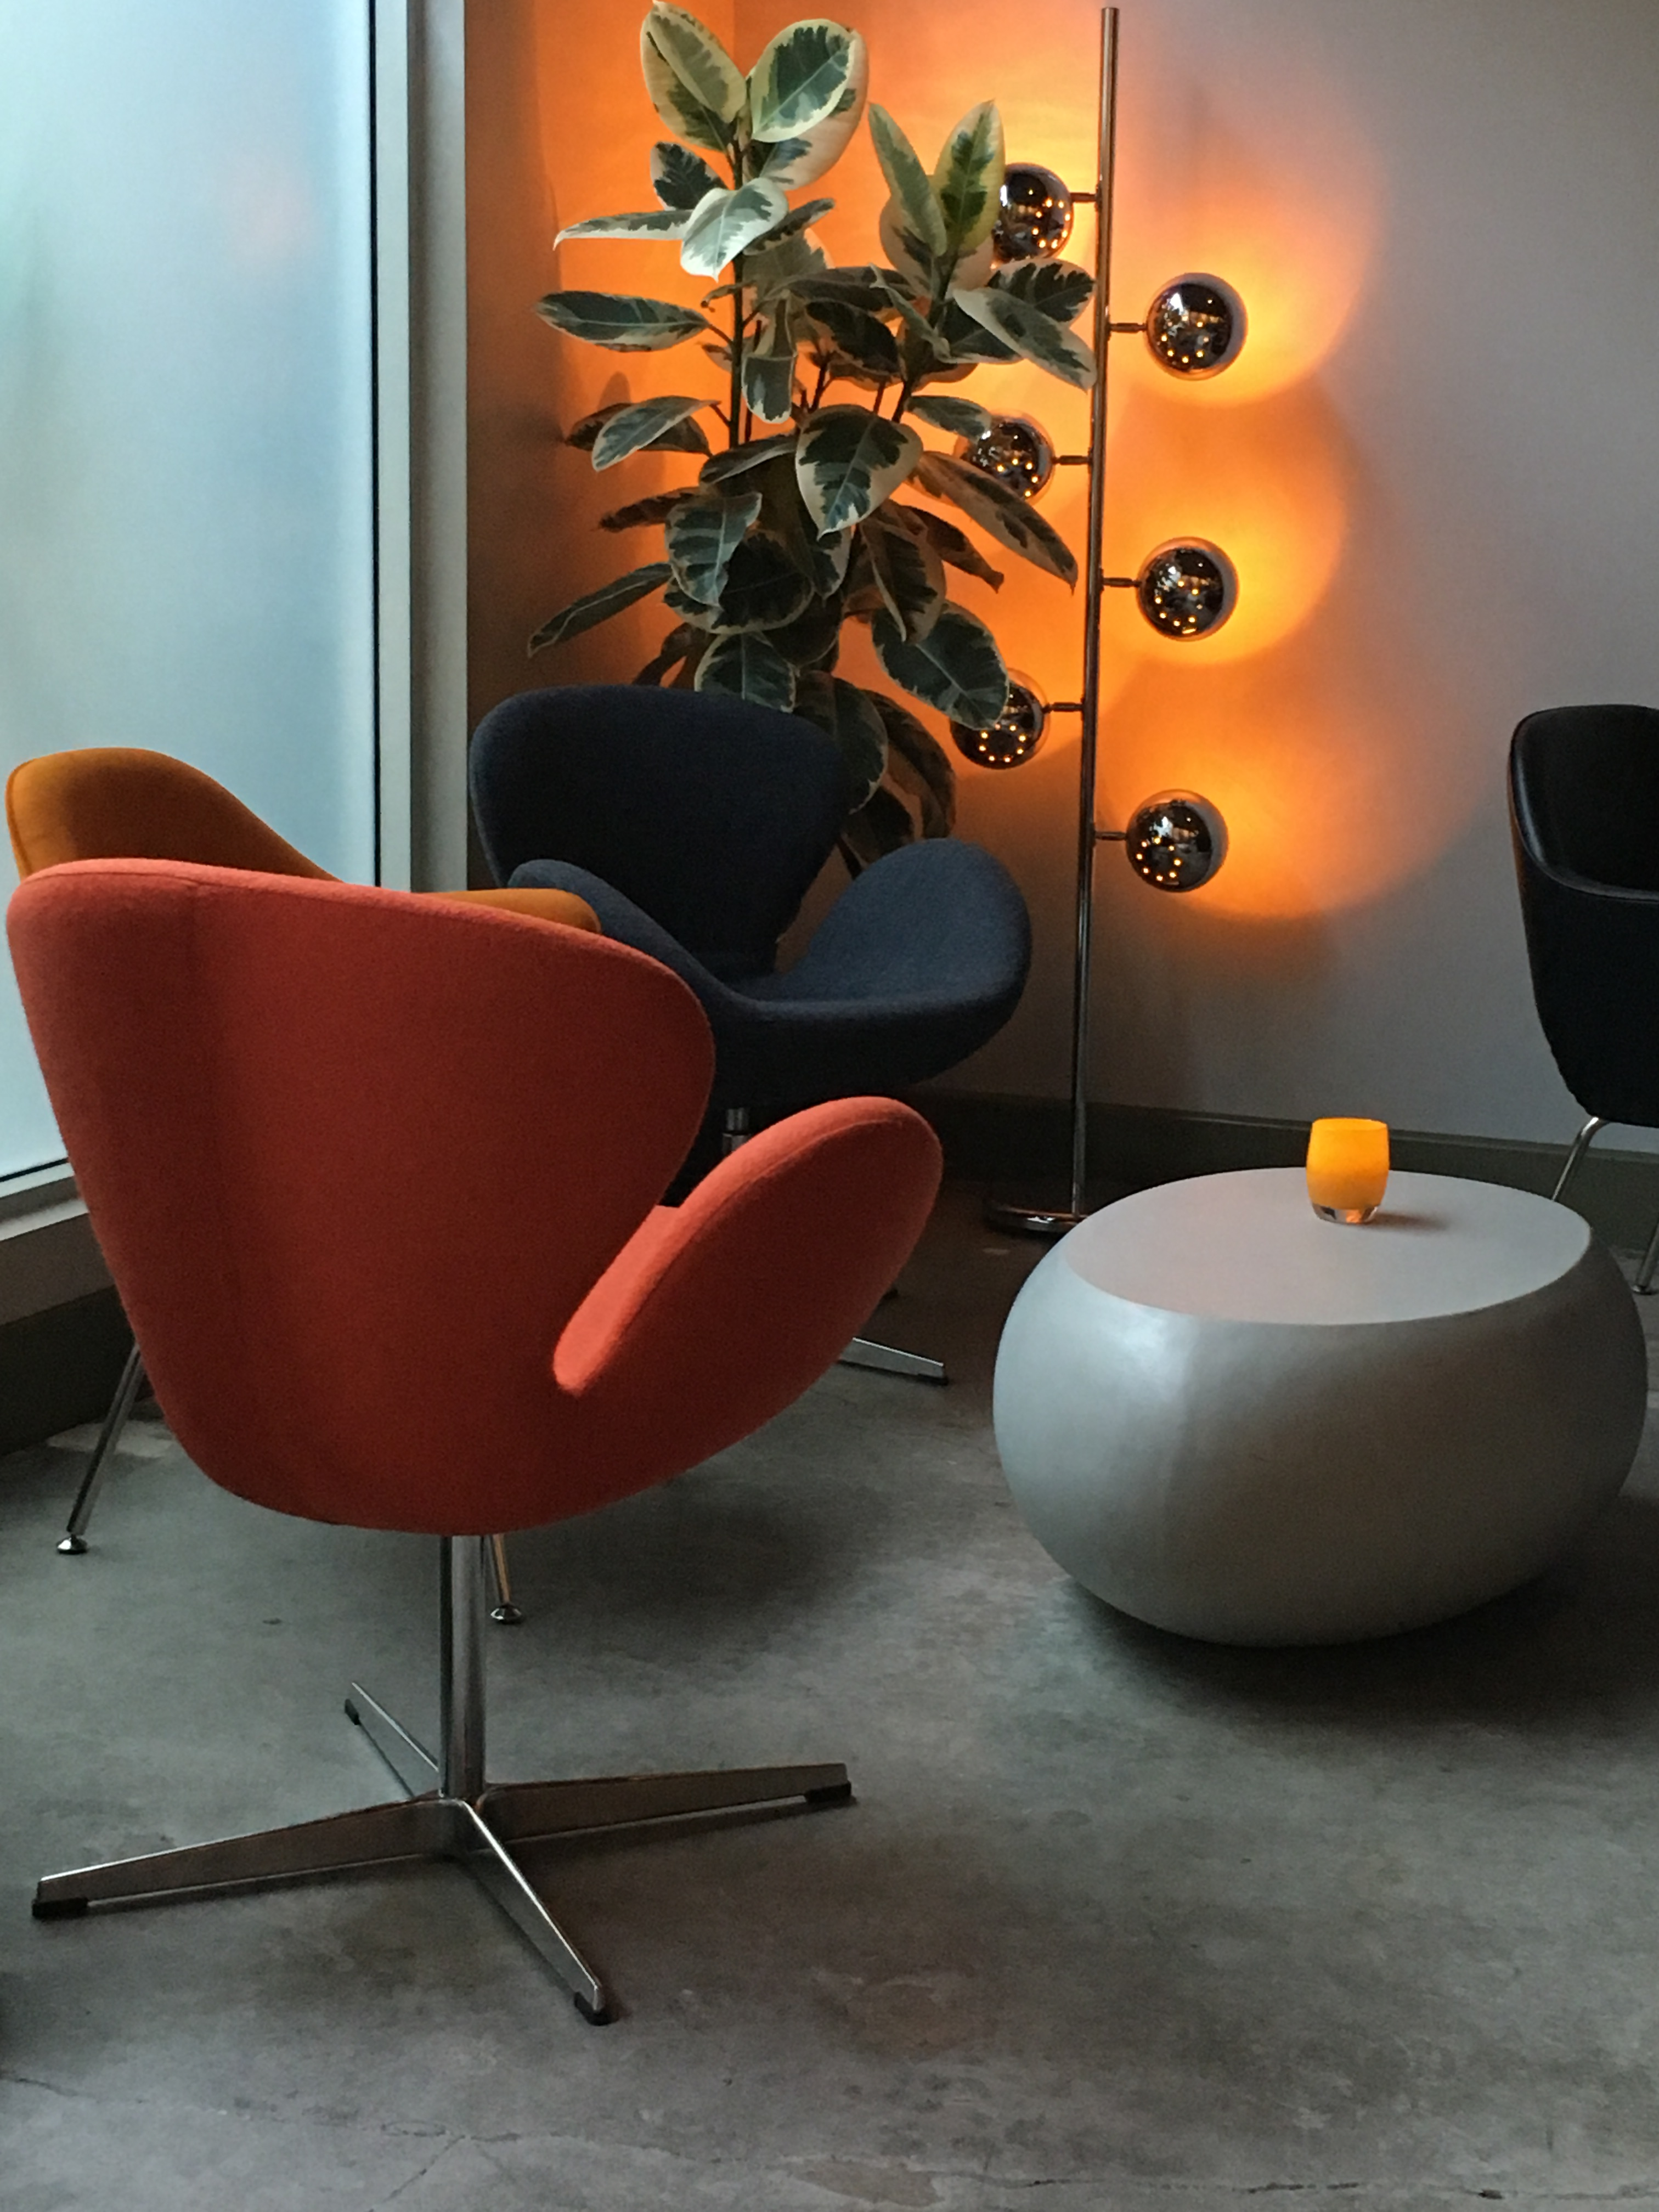 A photo of hip orange and navy chairs by a cool looking candle and a sleek lamp at local bar Honcho in downtown Los Altos, California. Photo Courtesy of FoodWaterShoes